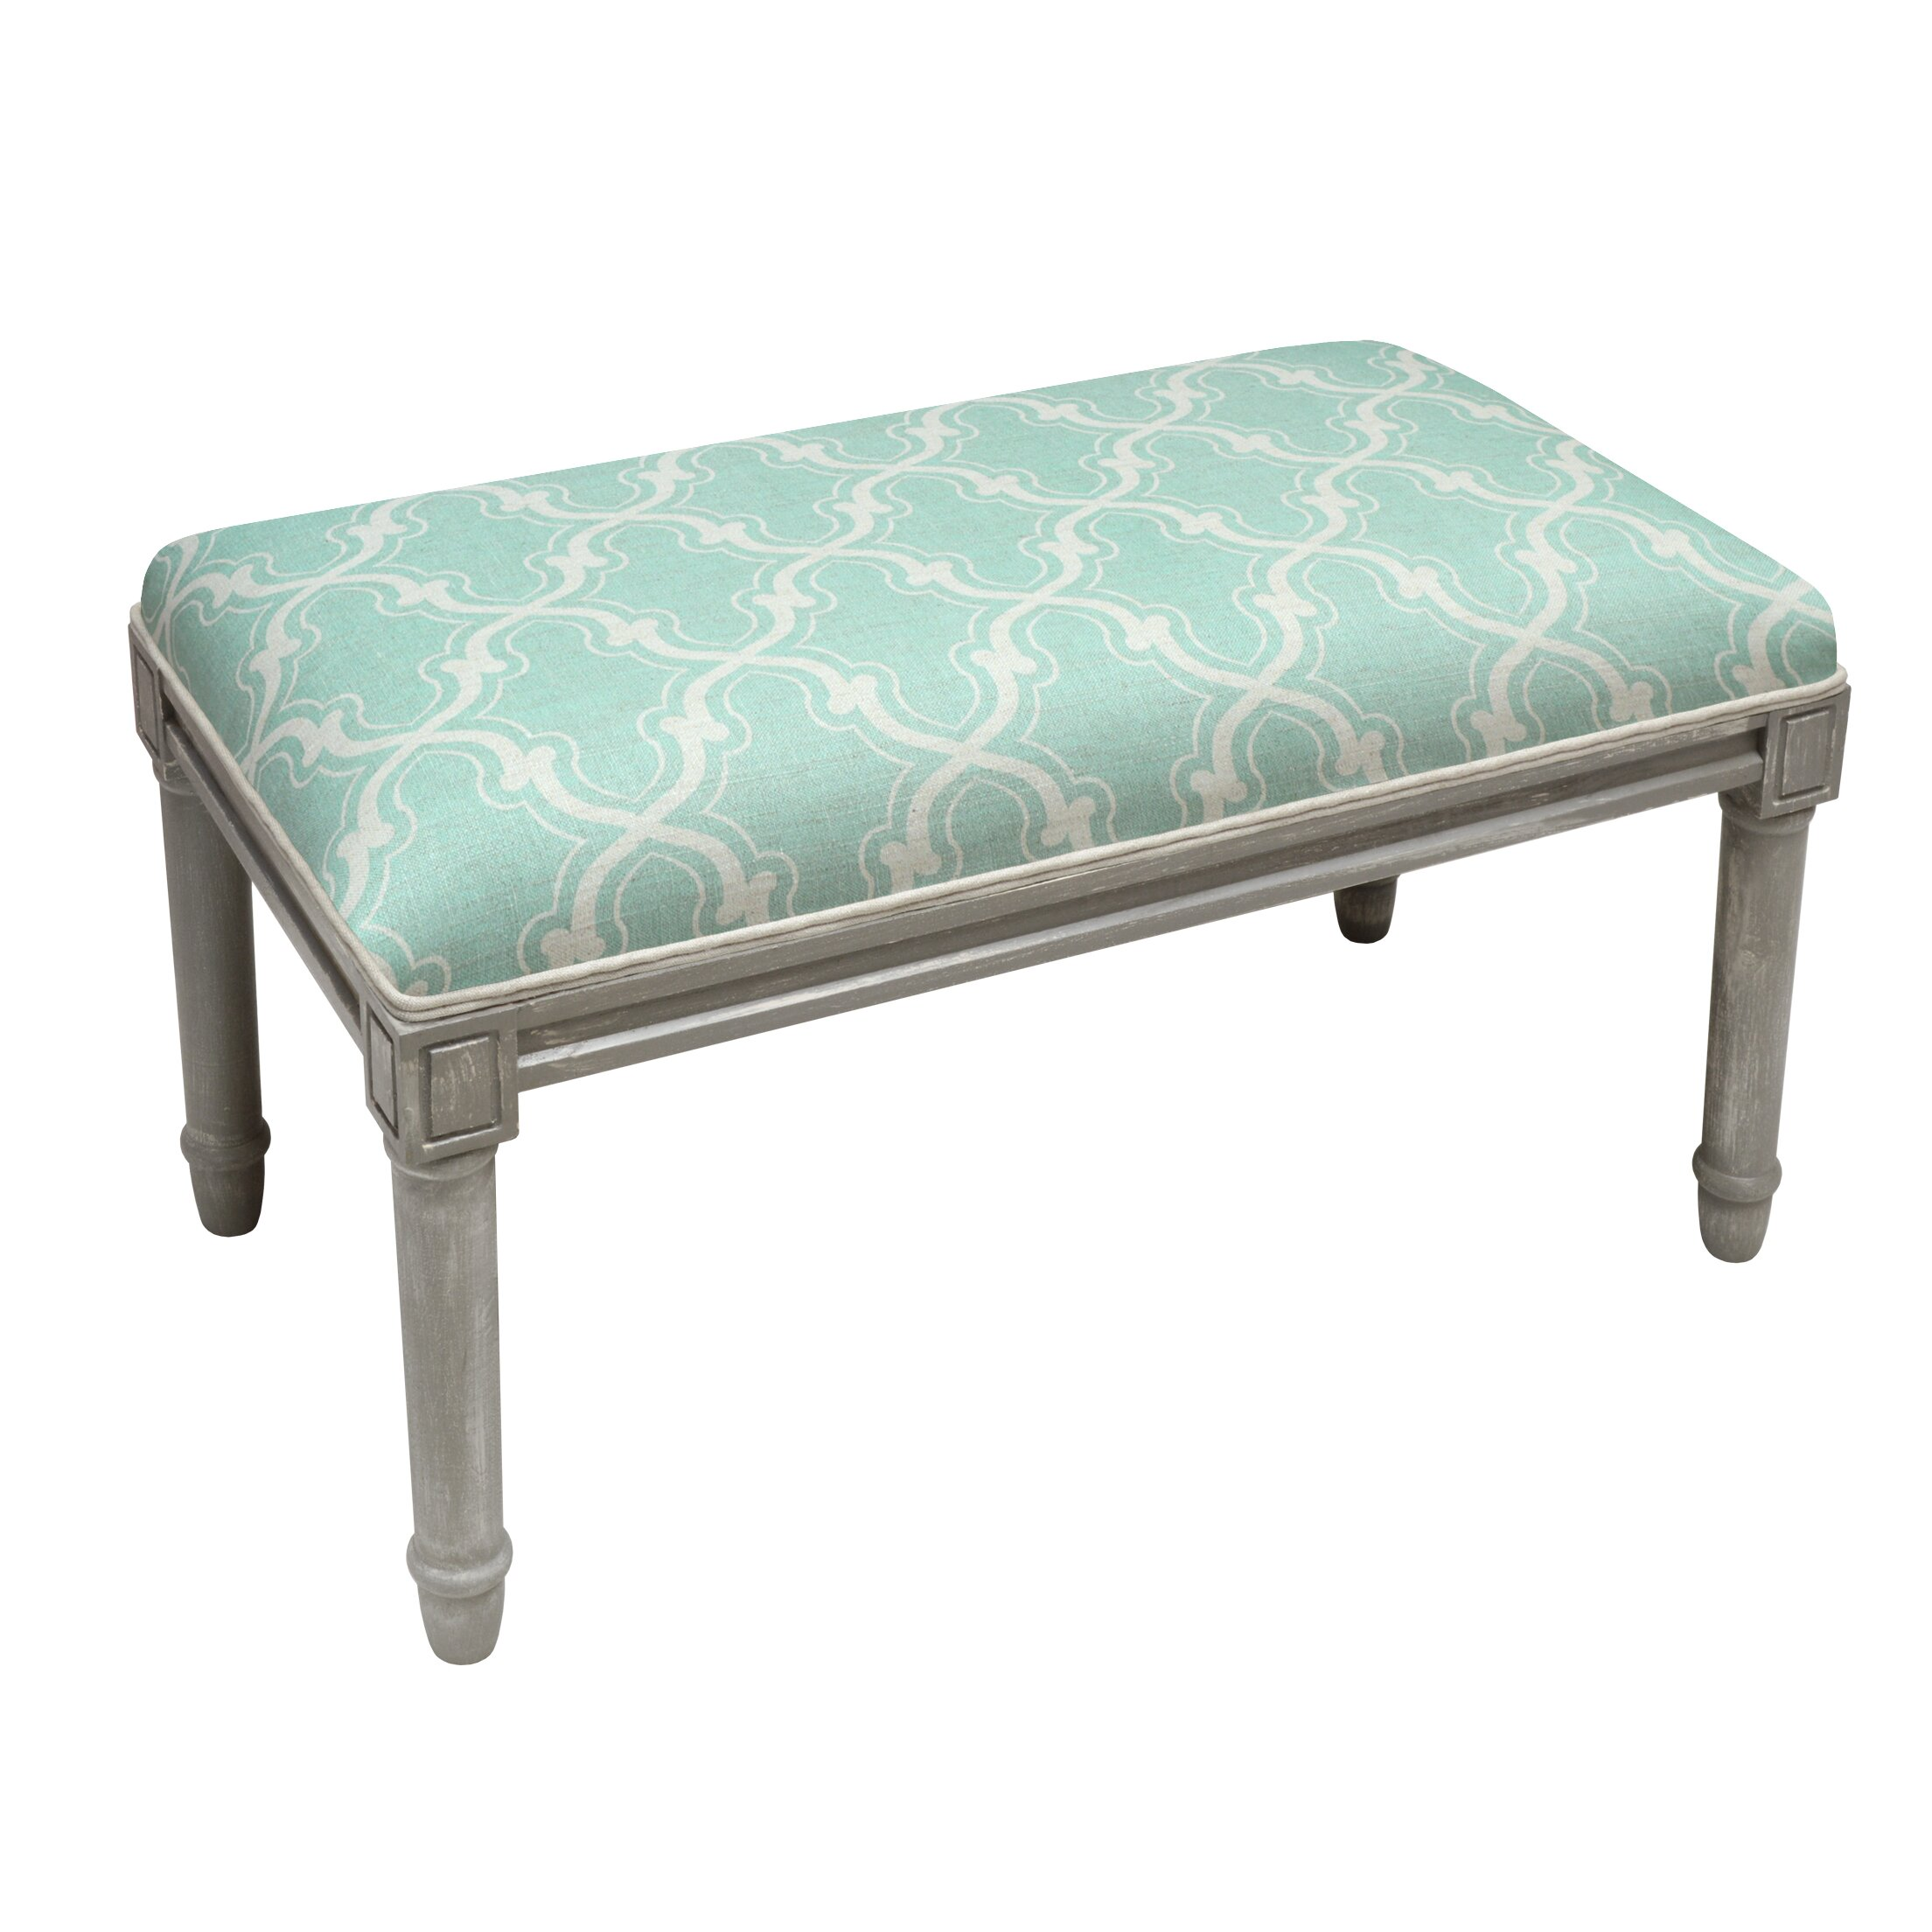 123 Creations Upholstered Entryway Bench Wayfair